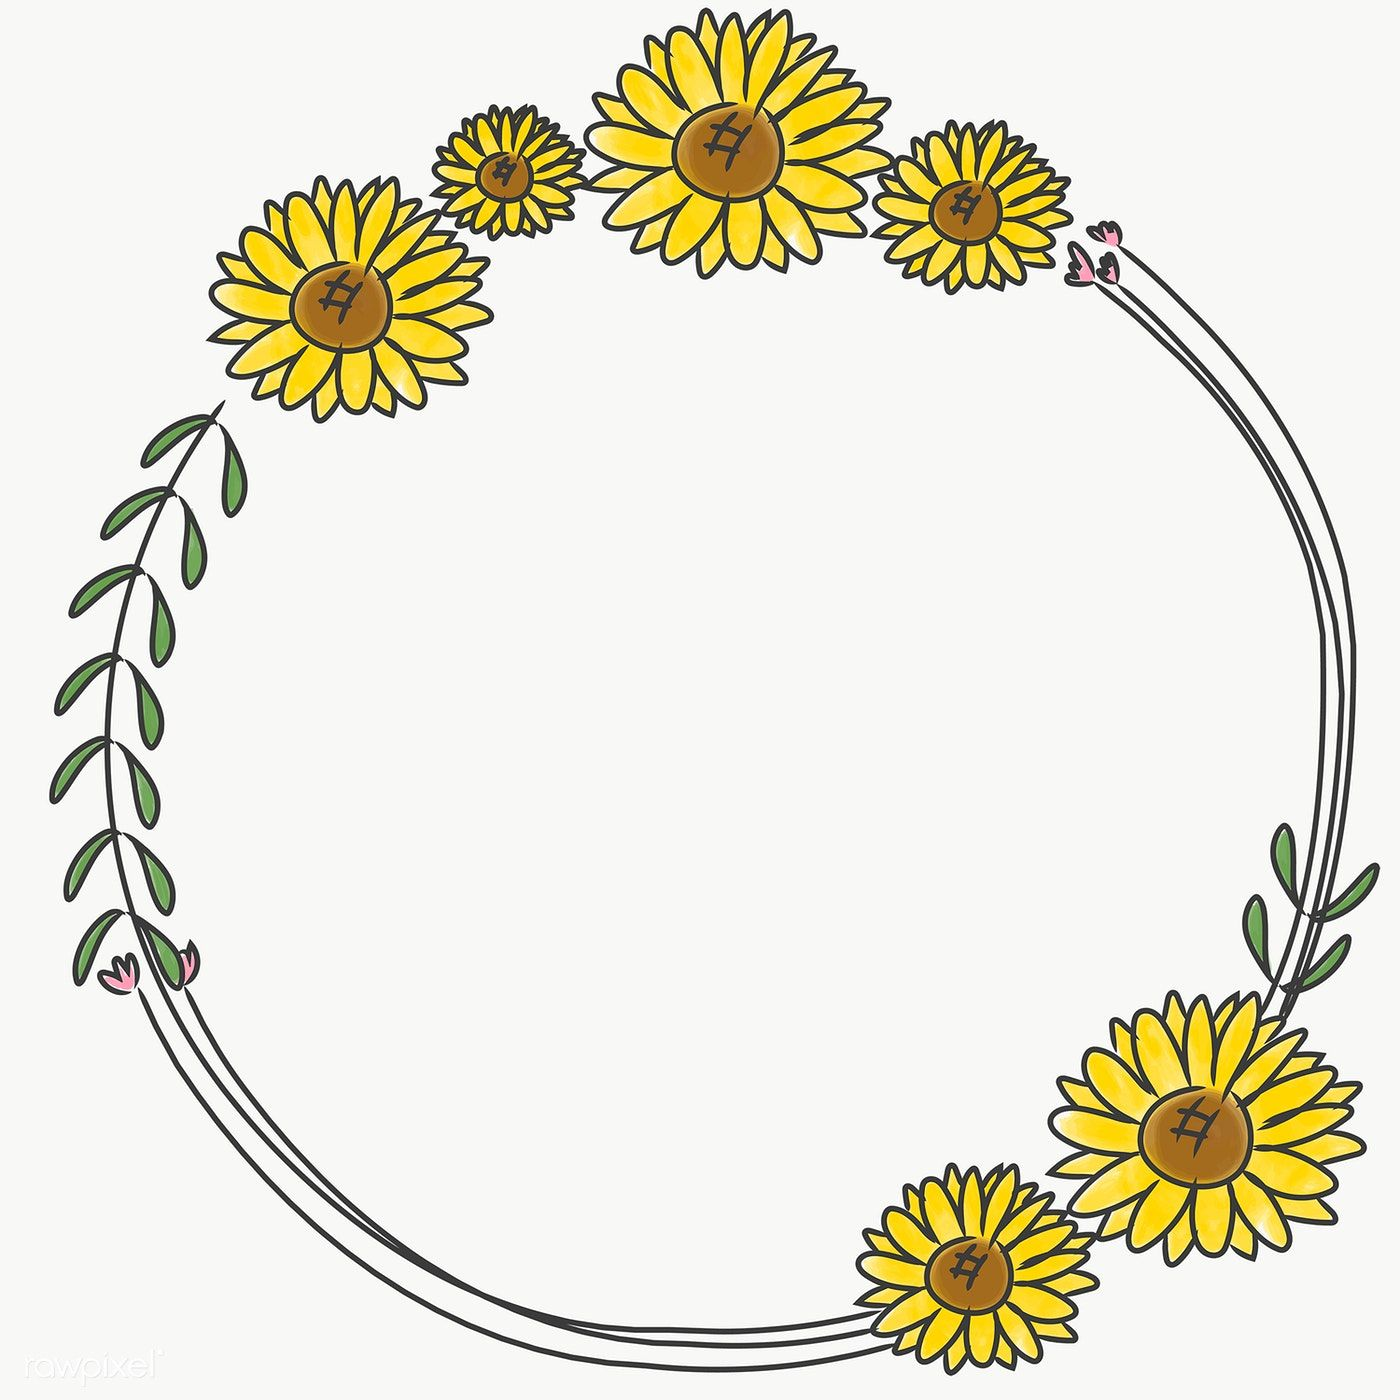 Hand Drawn Sunflower Wreath Transparent Png Free Image By Rawpixel Com Pimmy In 2020 Wreath Illustration Wreath Drawing Flower Wreath Illustration